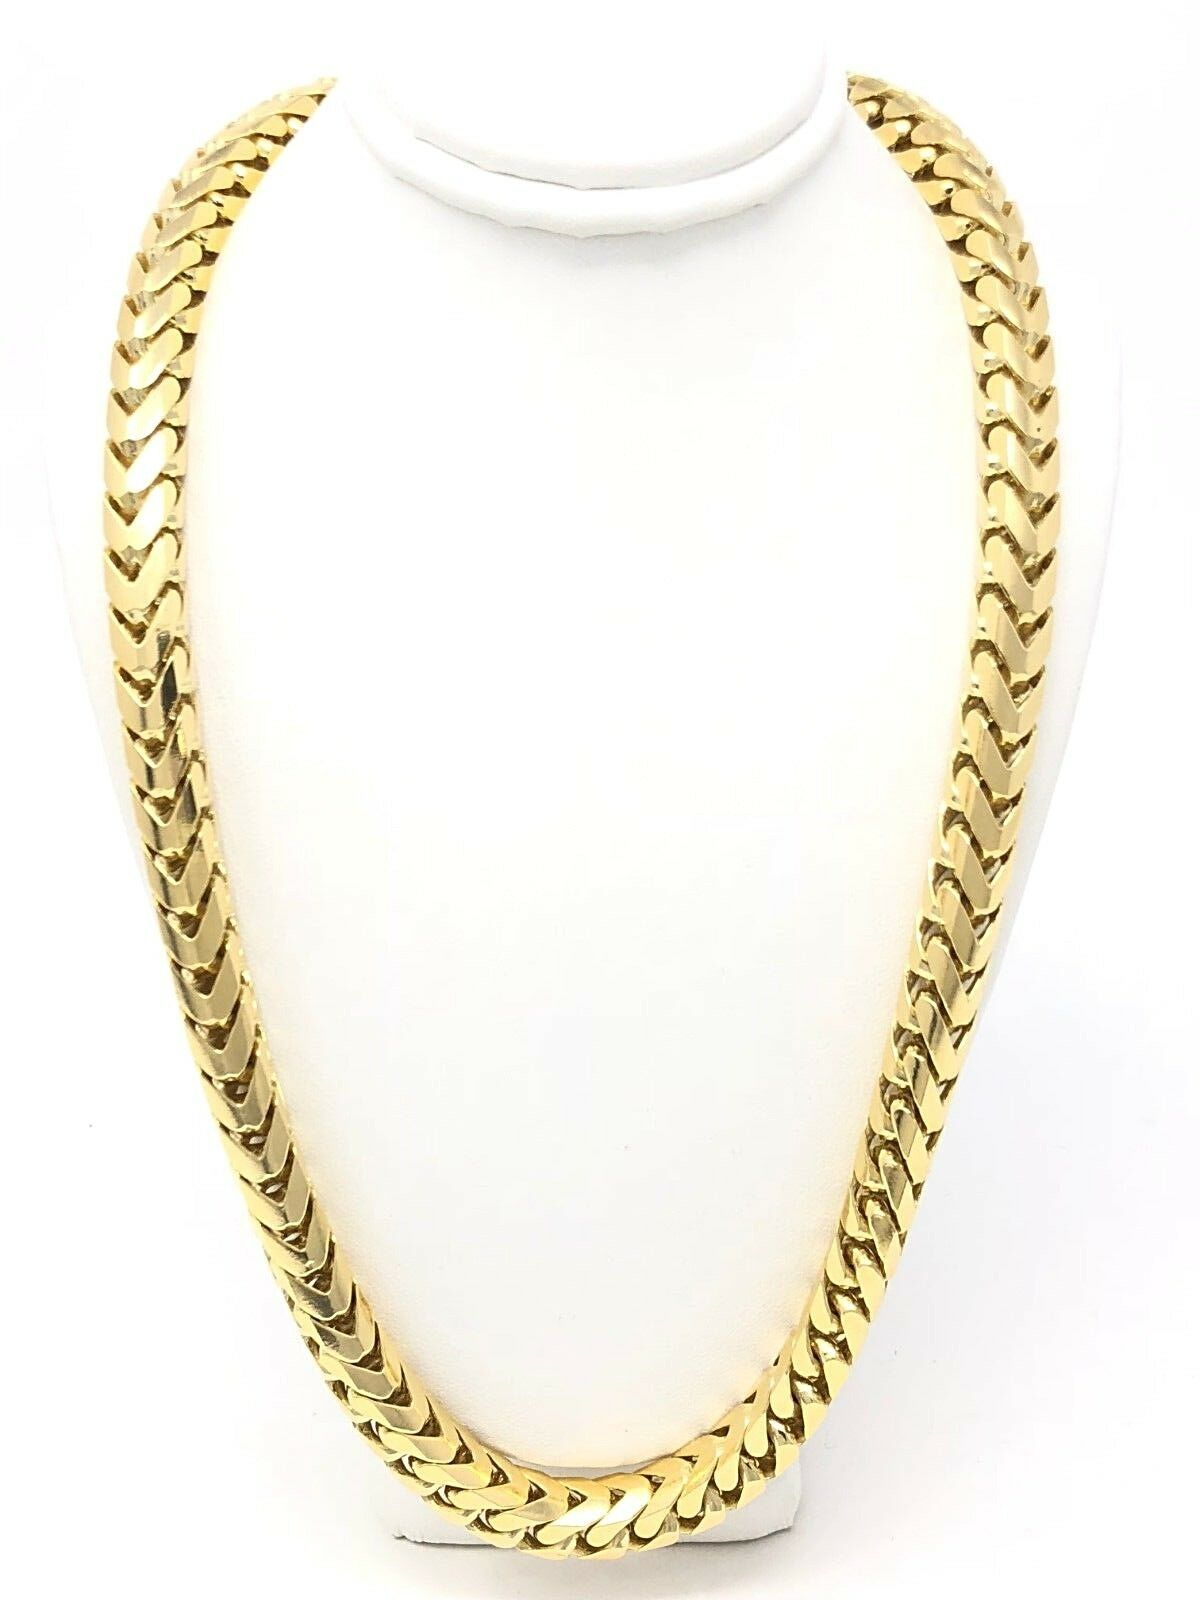 MN131-041 1mm 14K Yellow Gold Chain Solid Franco Chain Necklace  Gift box Ship from USA